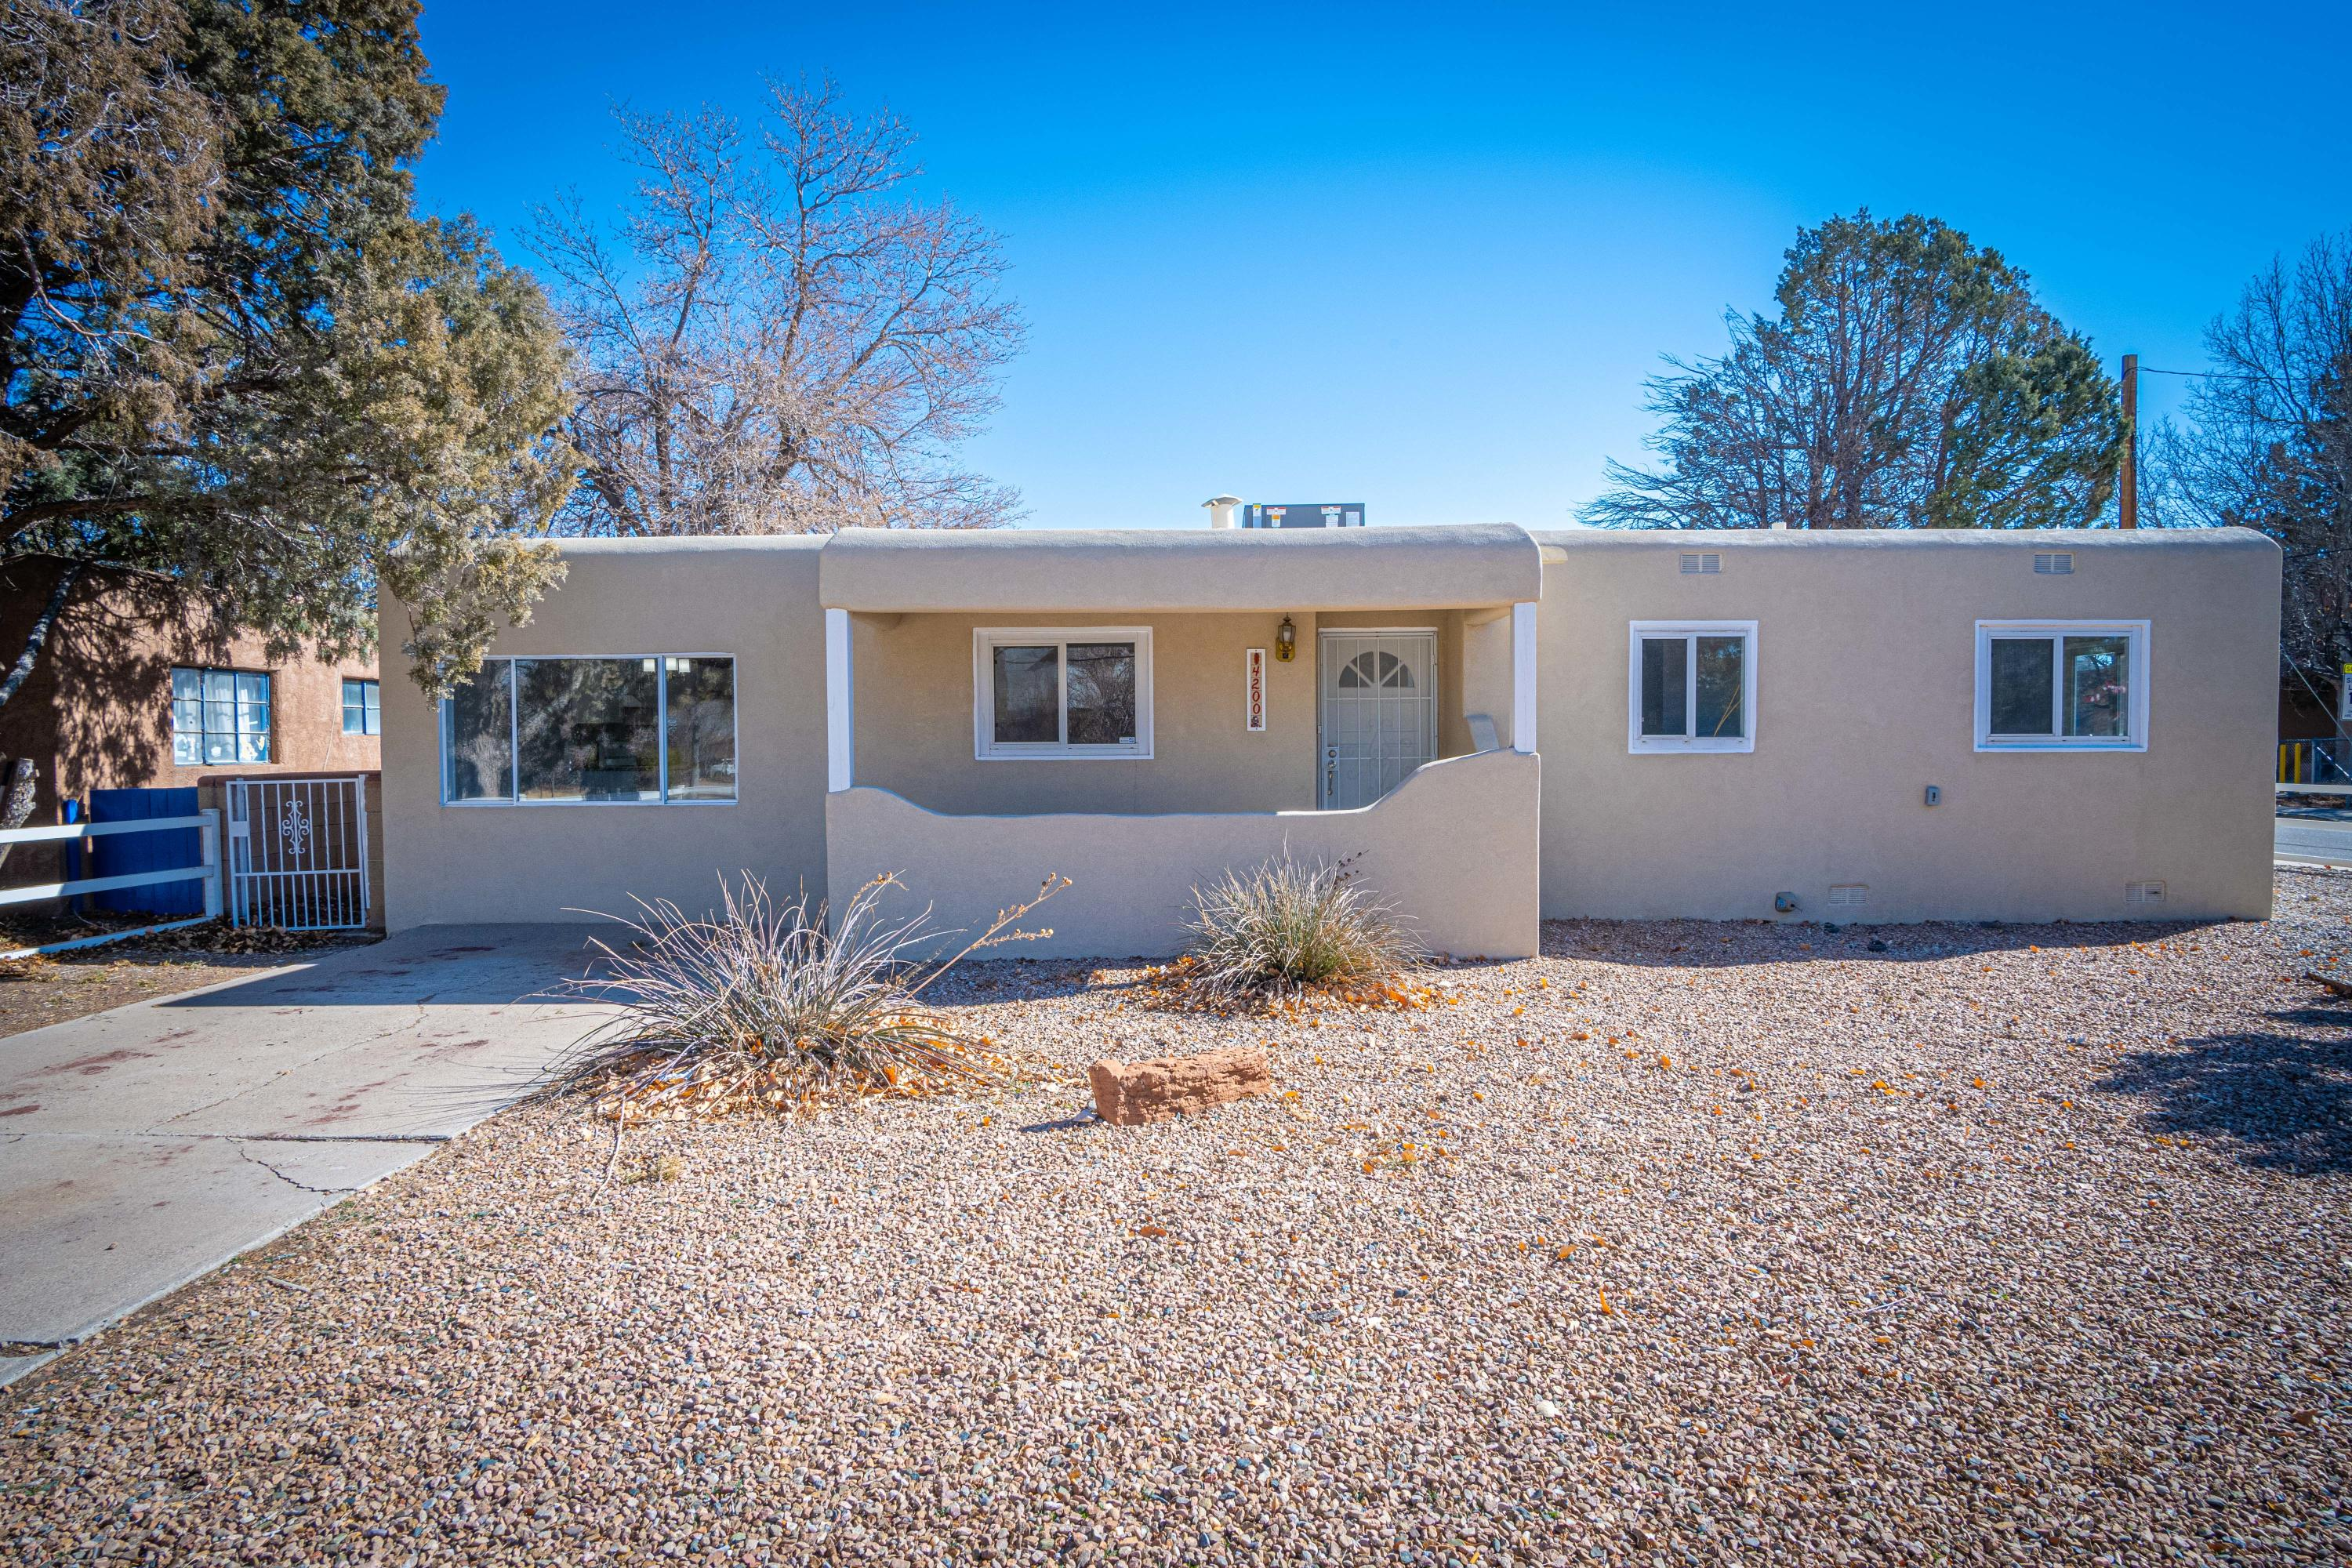 In the HEART of the North Valley you will find this beautiful and completely remodeled home which sits on over a quarter of an acre! This home features all new cabinetry, granite counter tops, lighting and tile throughout! In addition you will find a new TPO roof, new central refrigeration air and heating, synthetic stucco, 50 gal water heater, not to mention all new plumbing and electrical throughout the home.  For convenience, the backyard access will lead you into this amazing yard which has plenty of space to house your toys, to entertain or just sit and relax.  The workshop wired for 220 can be used for different things such as a studio, playroom or just storage. Your options are endless. Schedule a showing today!